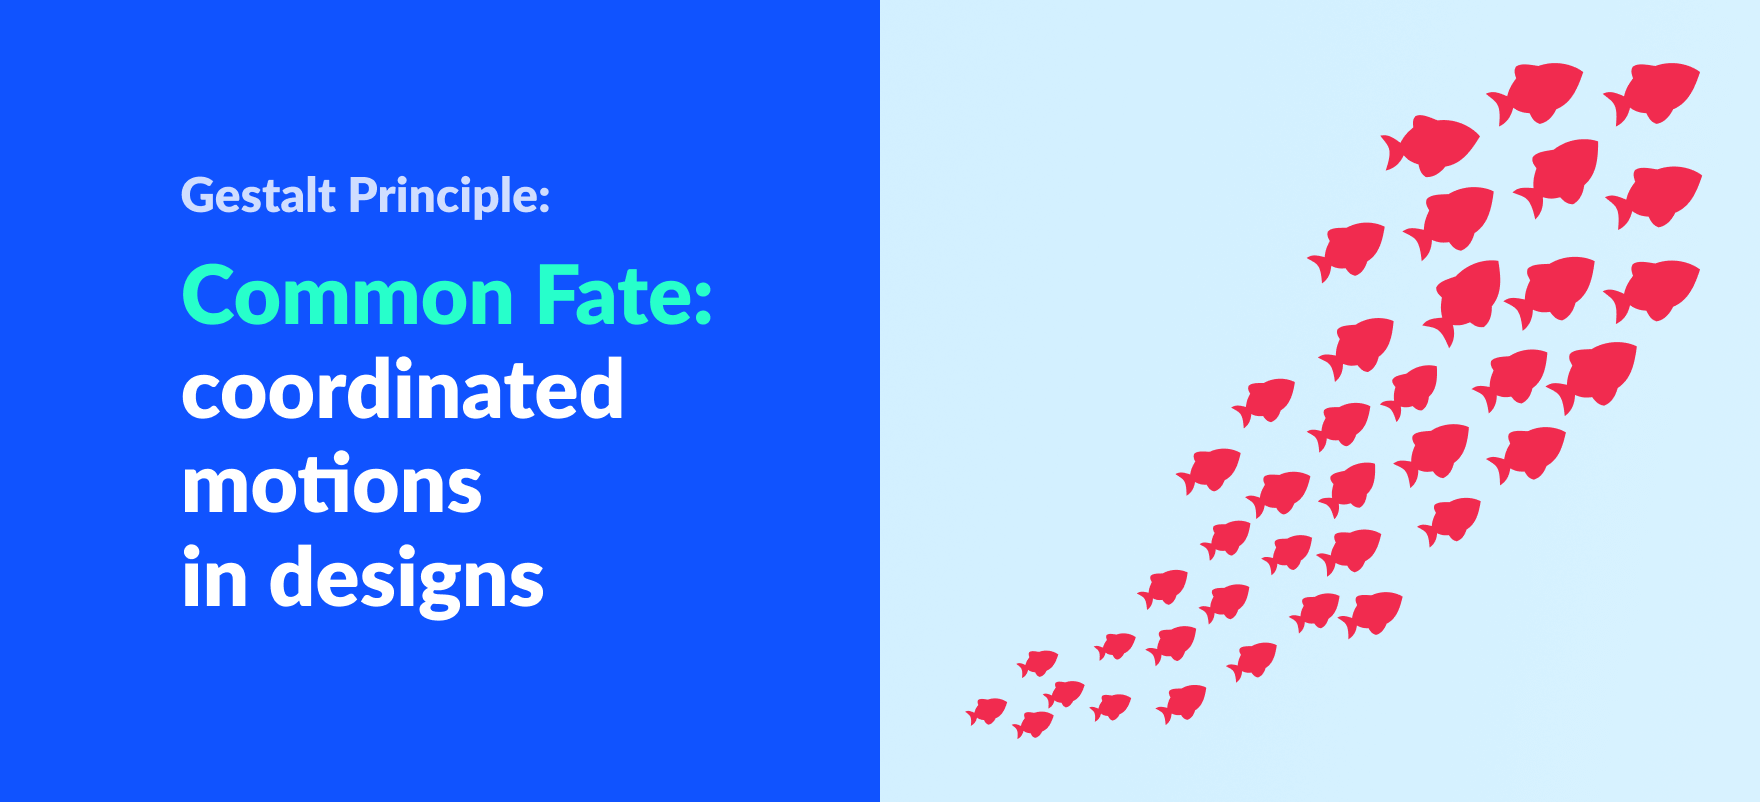 gestalt principle of common fate article banner